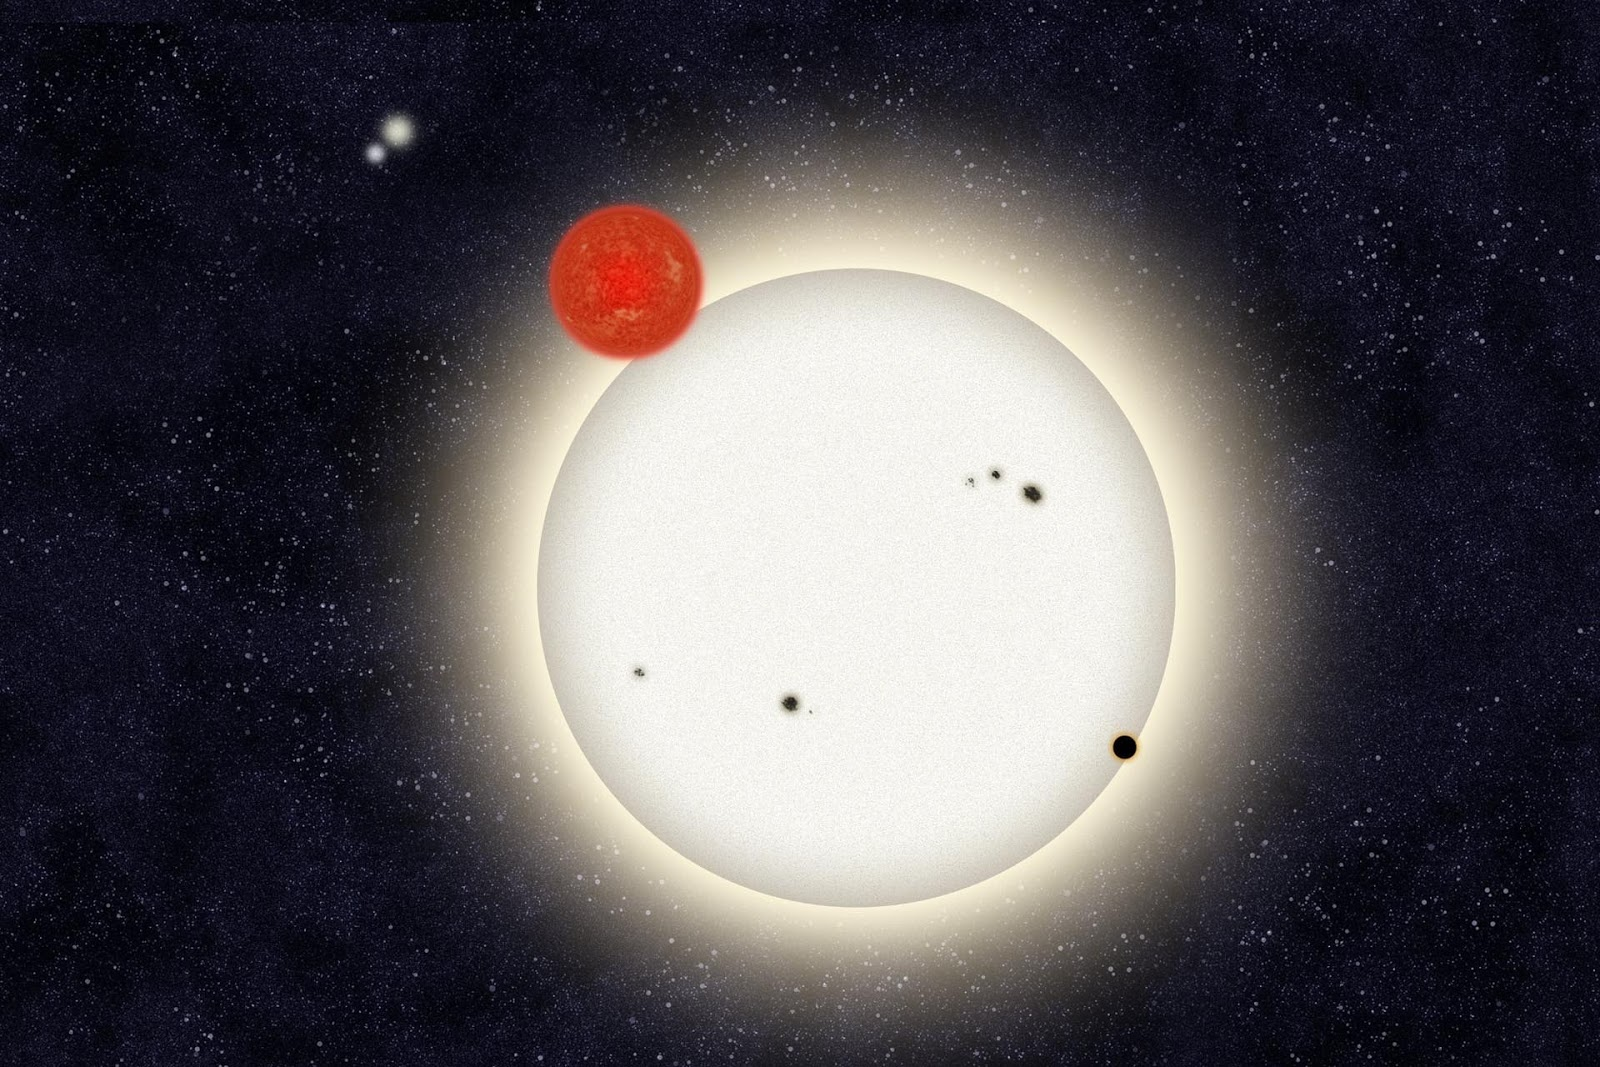 newest planets discovered today - photo #46